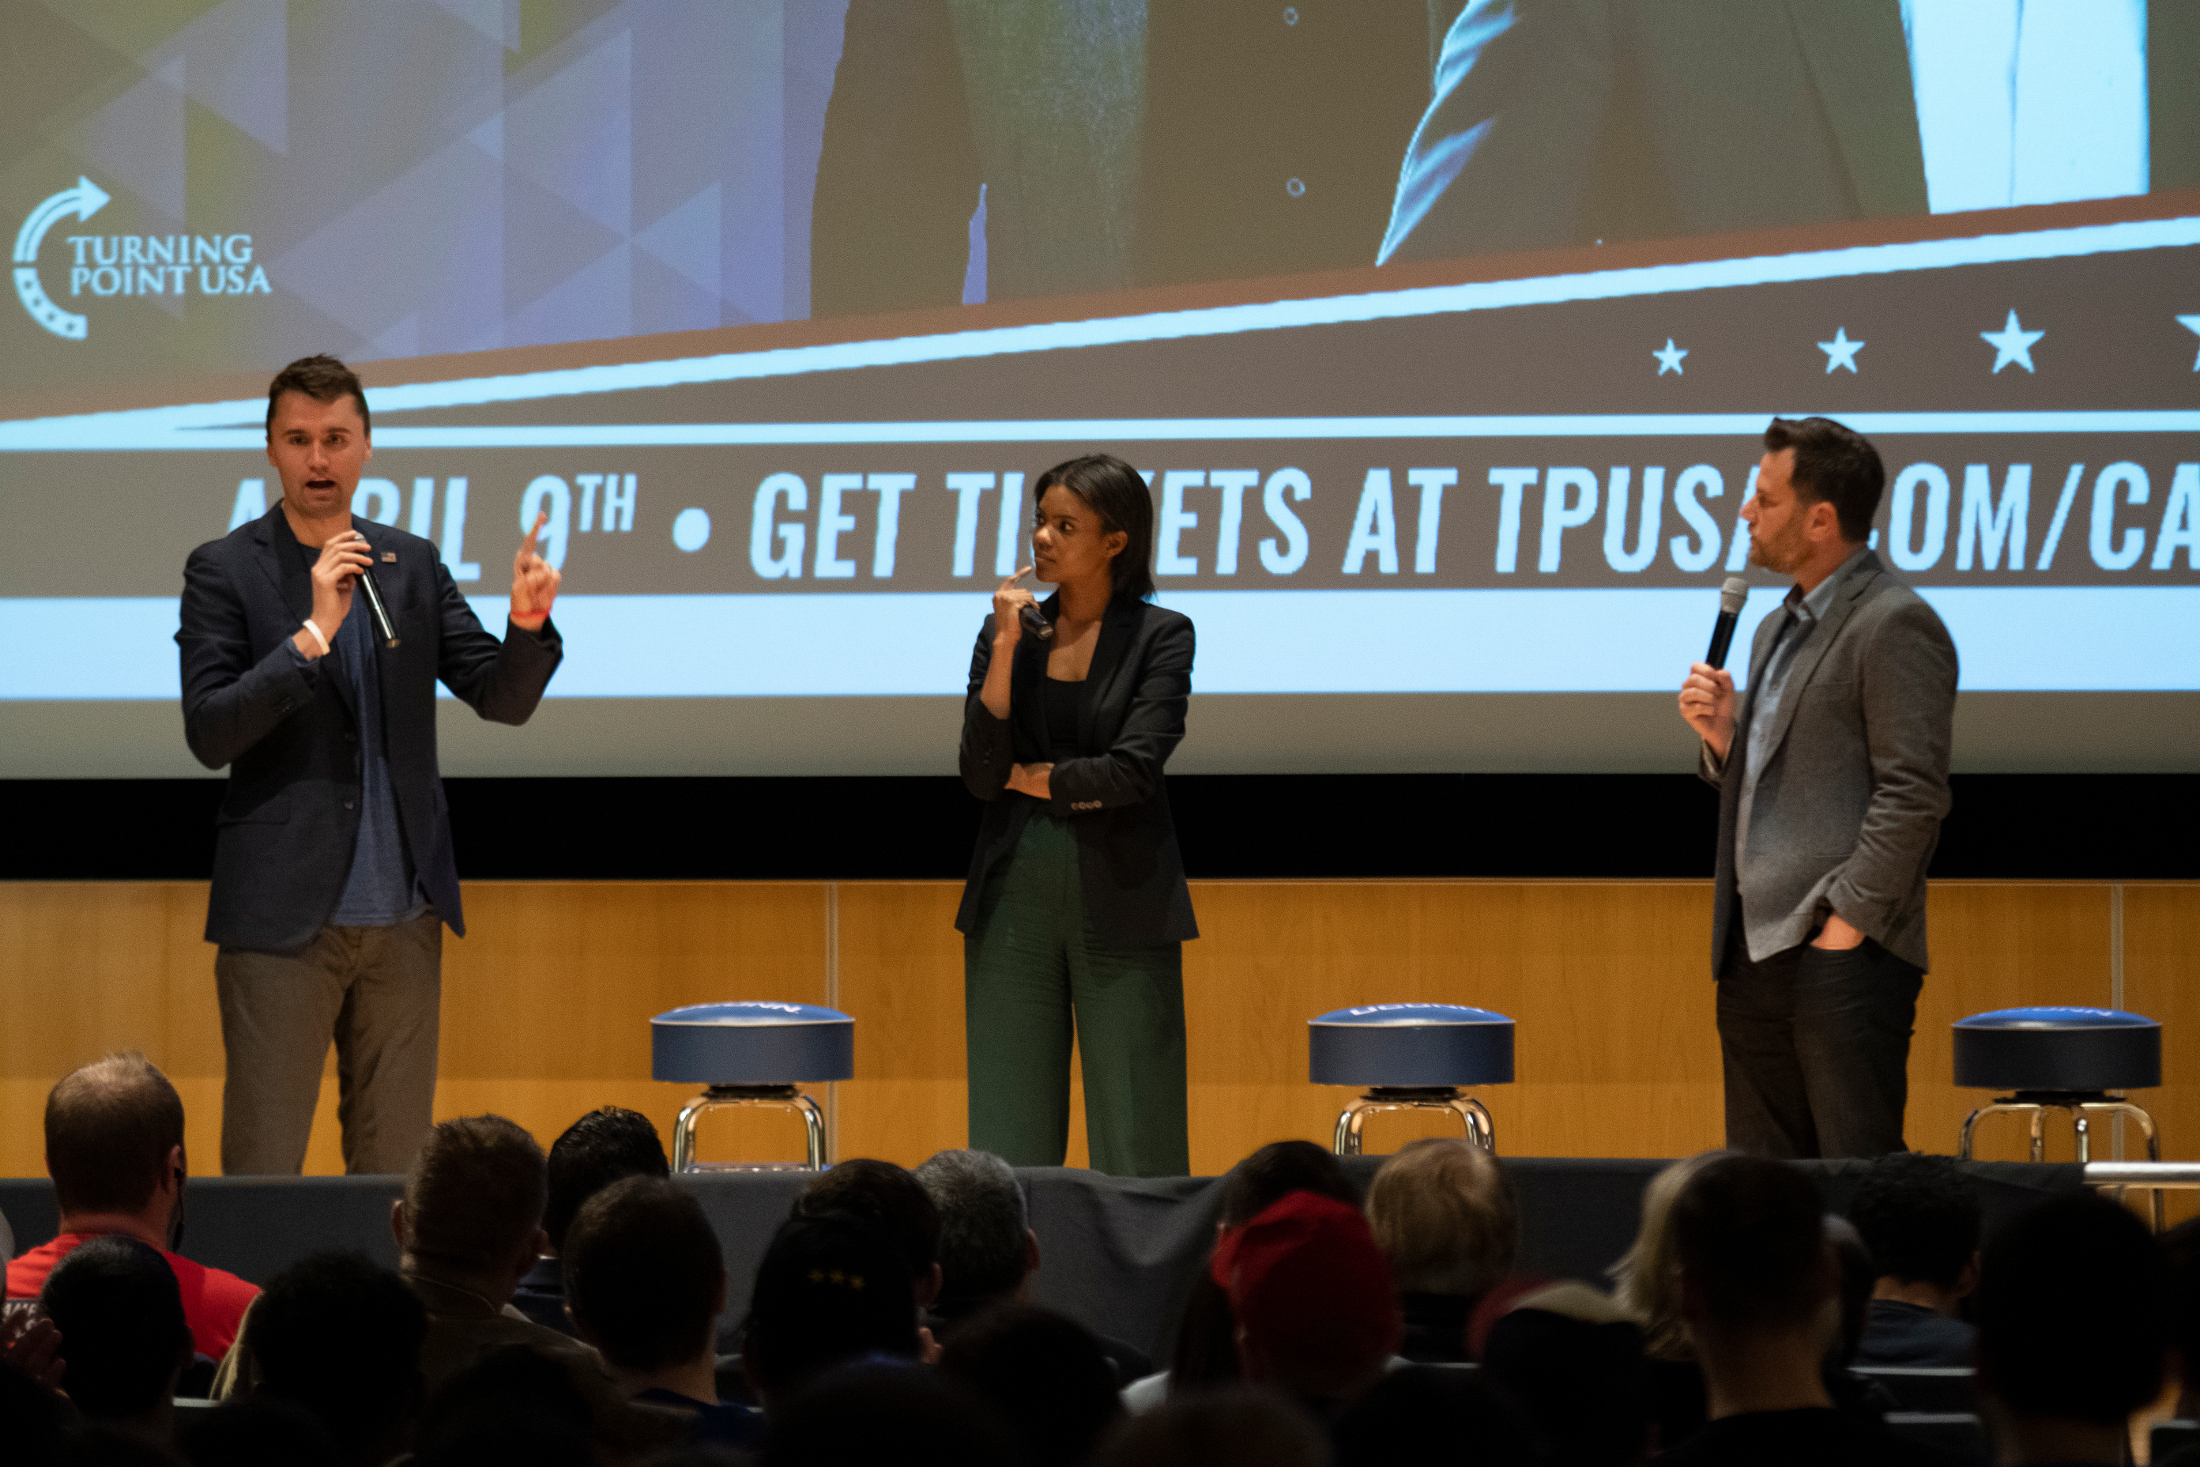 Conservative speakers Dave Rubin, Charlie Kurk and Candace Owens spoke in the Student Union Theater Tuesday night as representatives of Turning Point USA (Nicholas Hampton/The Daily Campus)